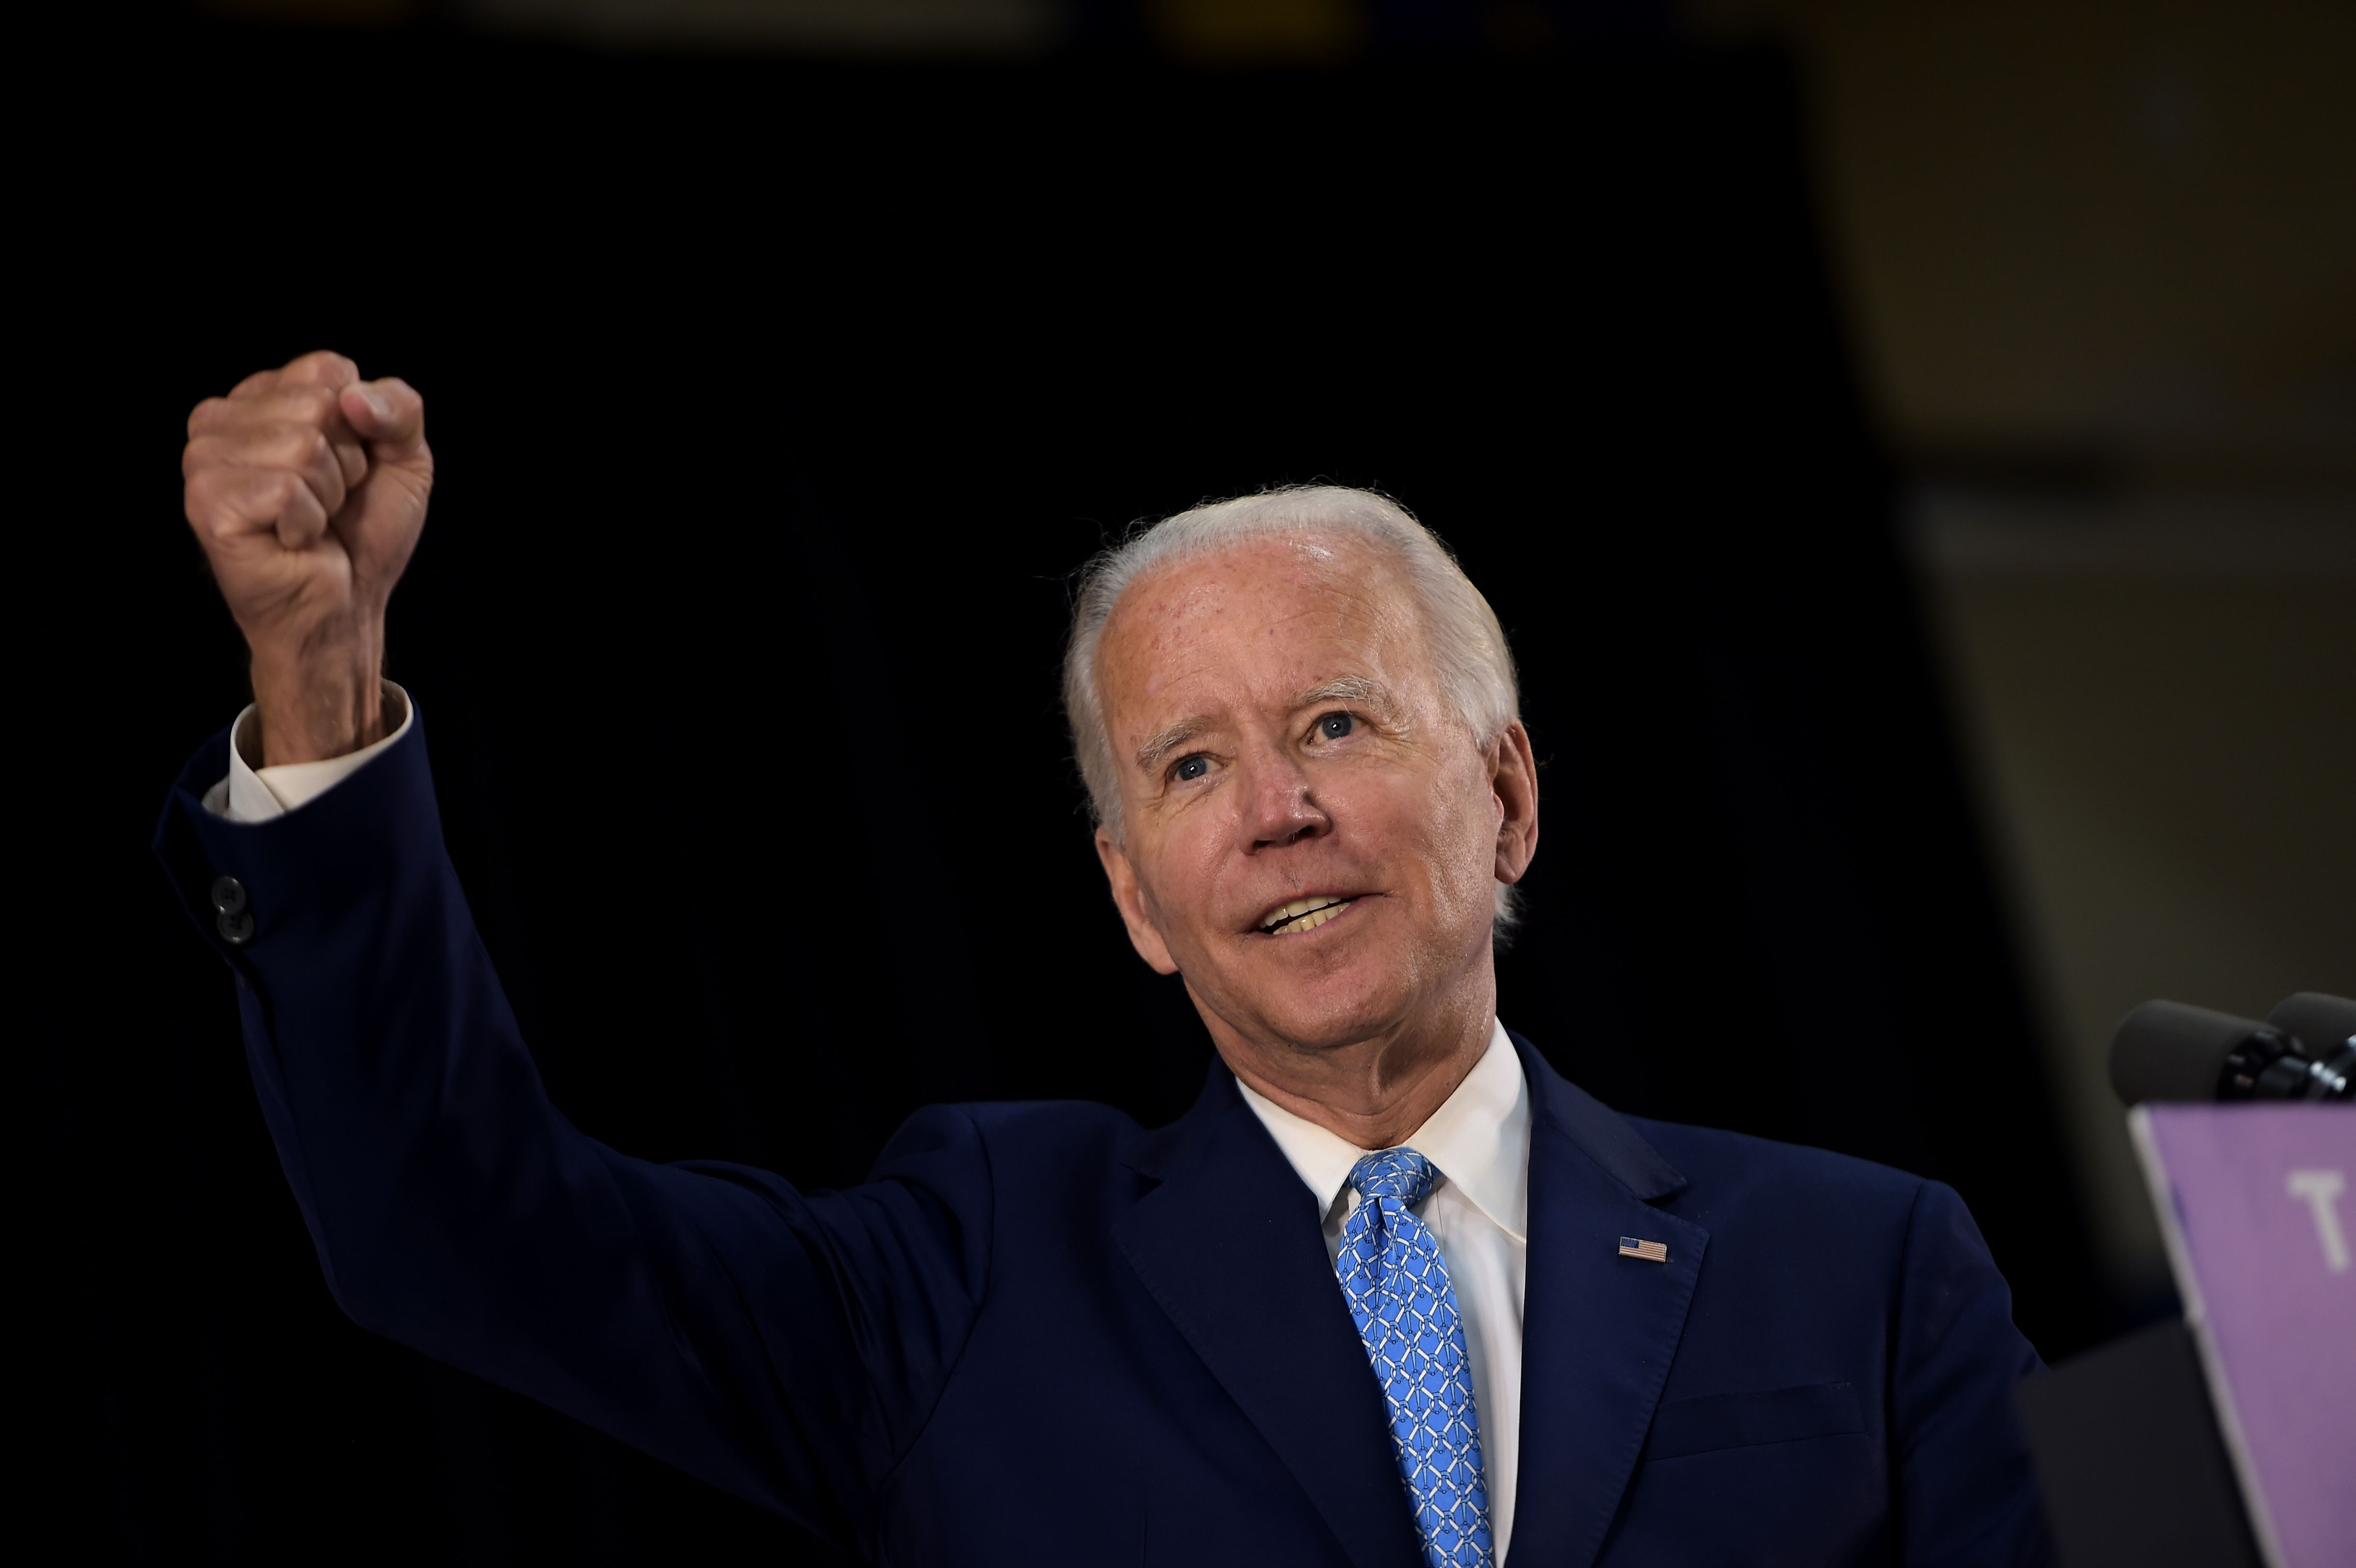 US Democratic presidential candidate Joe Biden answers questions after speaking about the coronavirus pandemic and the economy on June 30, 2020, in Wilmington, Delaware. (Photo by Brendan Smialowski / AFP) (Photo by BRENDAN SMIALOWSKI/AFP via Getty Images)